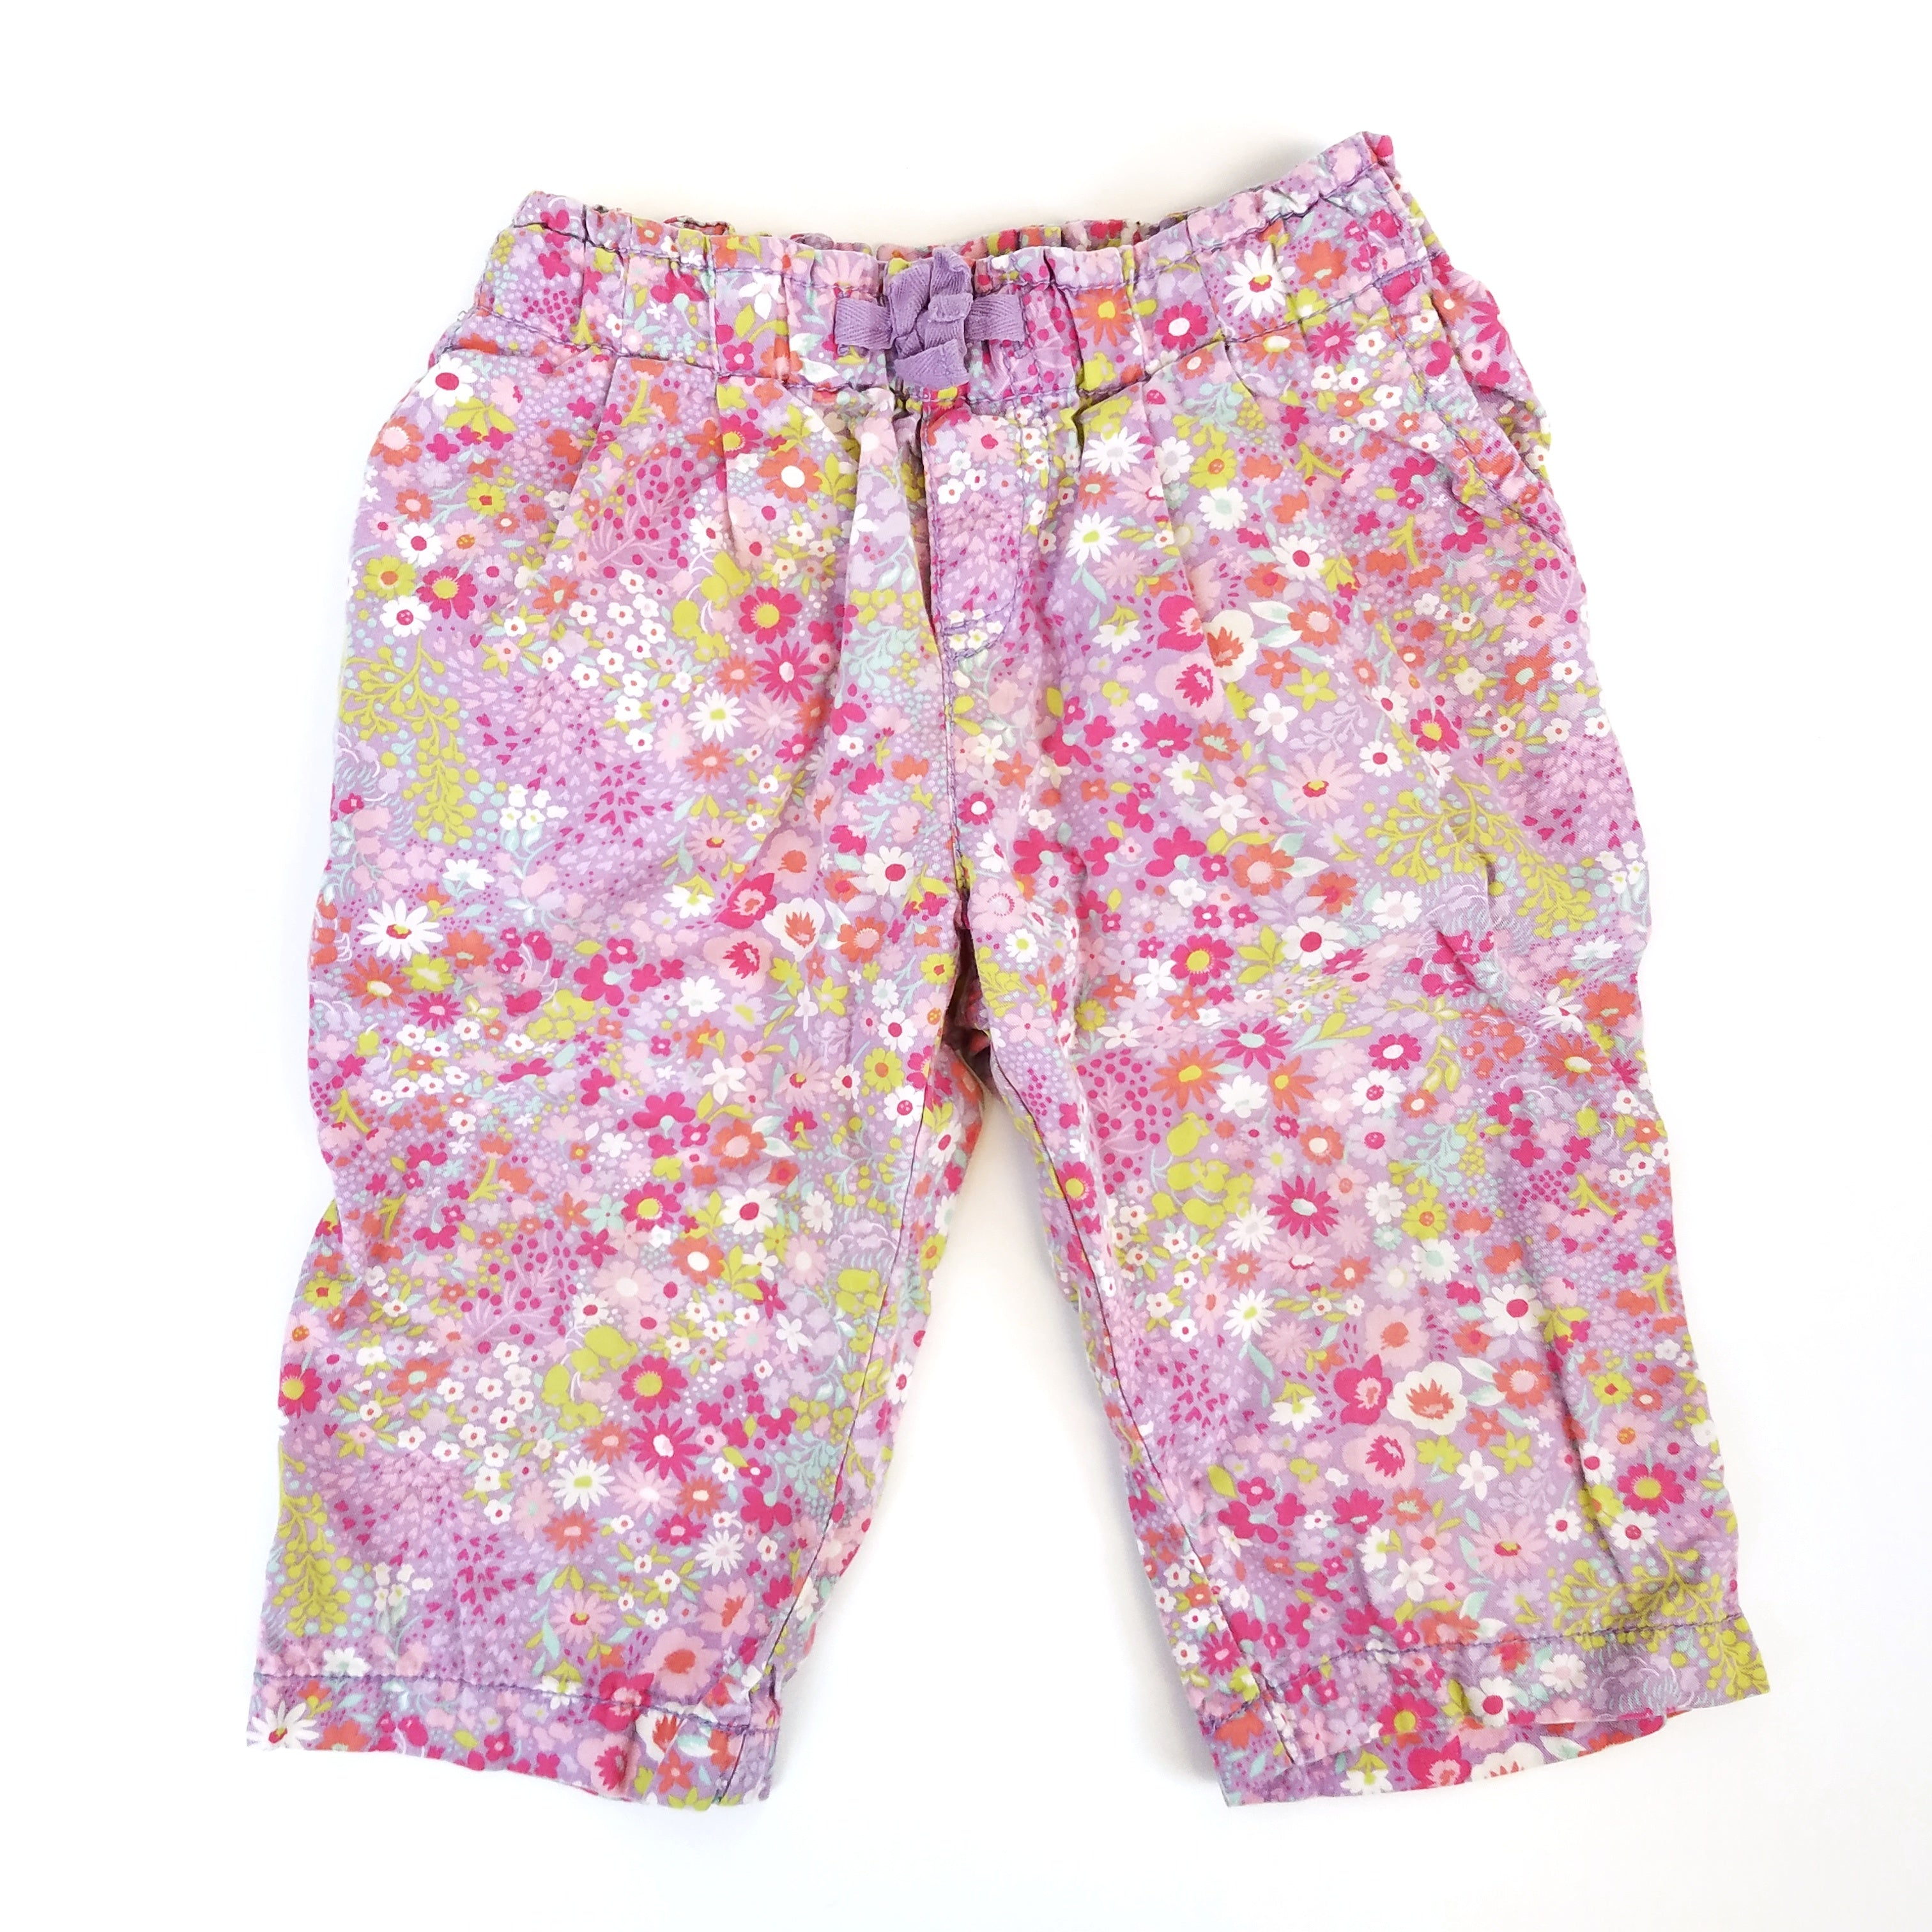 3t Purple Floral Pants - Wild Child